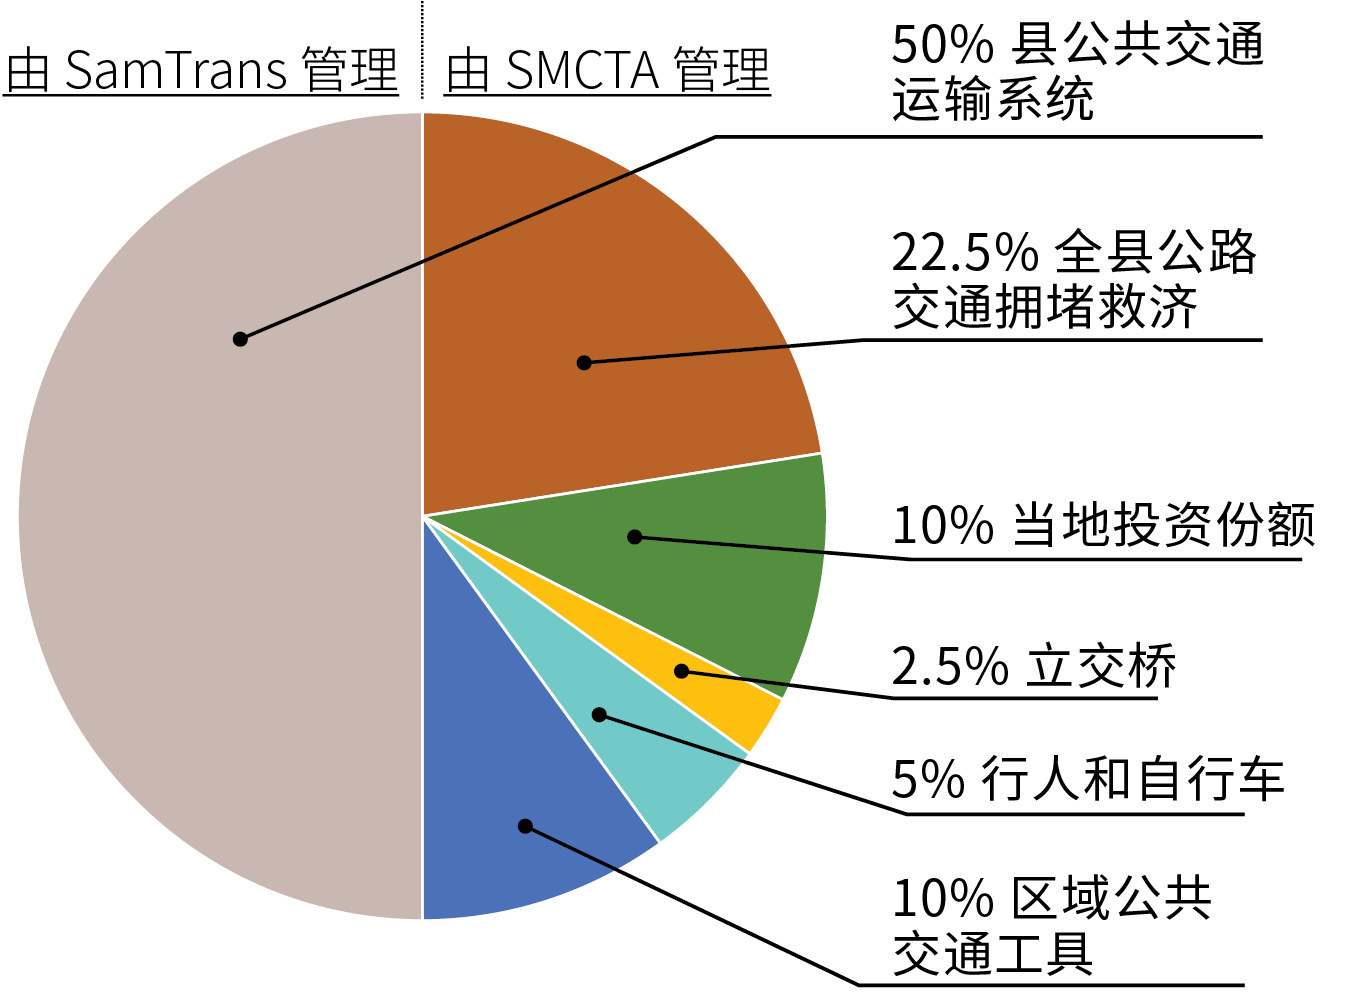 Measure W Pie Chart Simplified Chinese